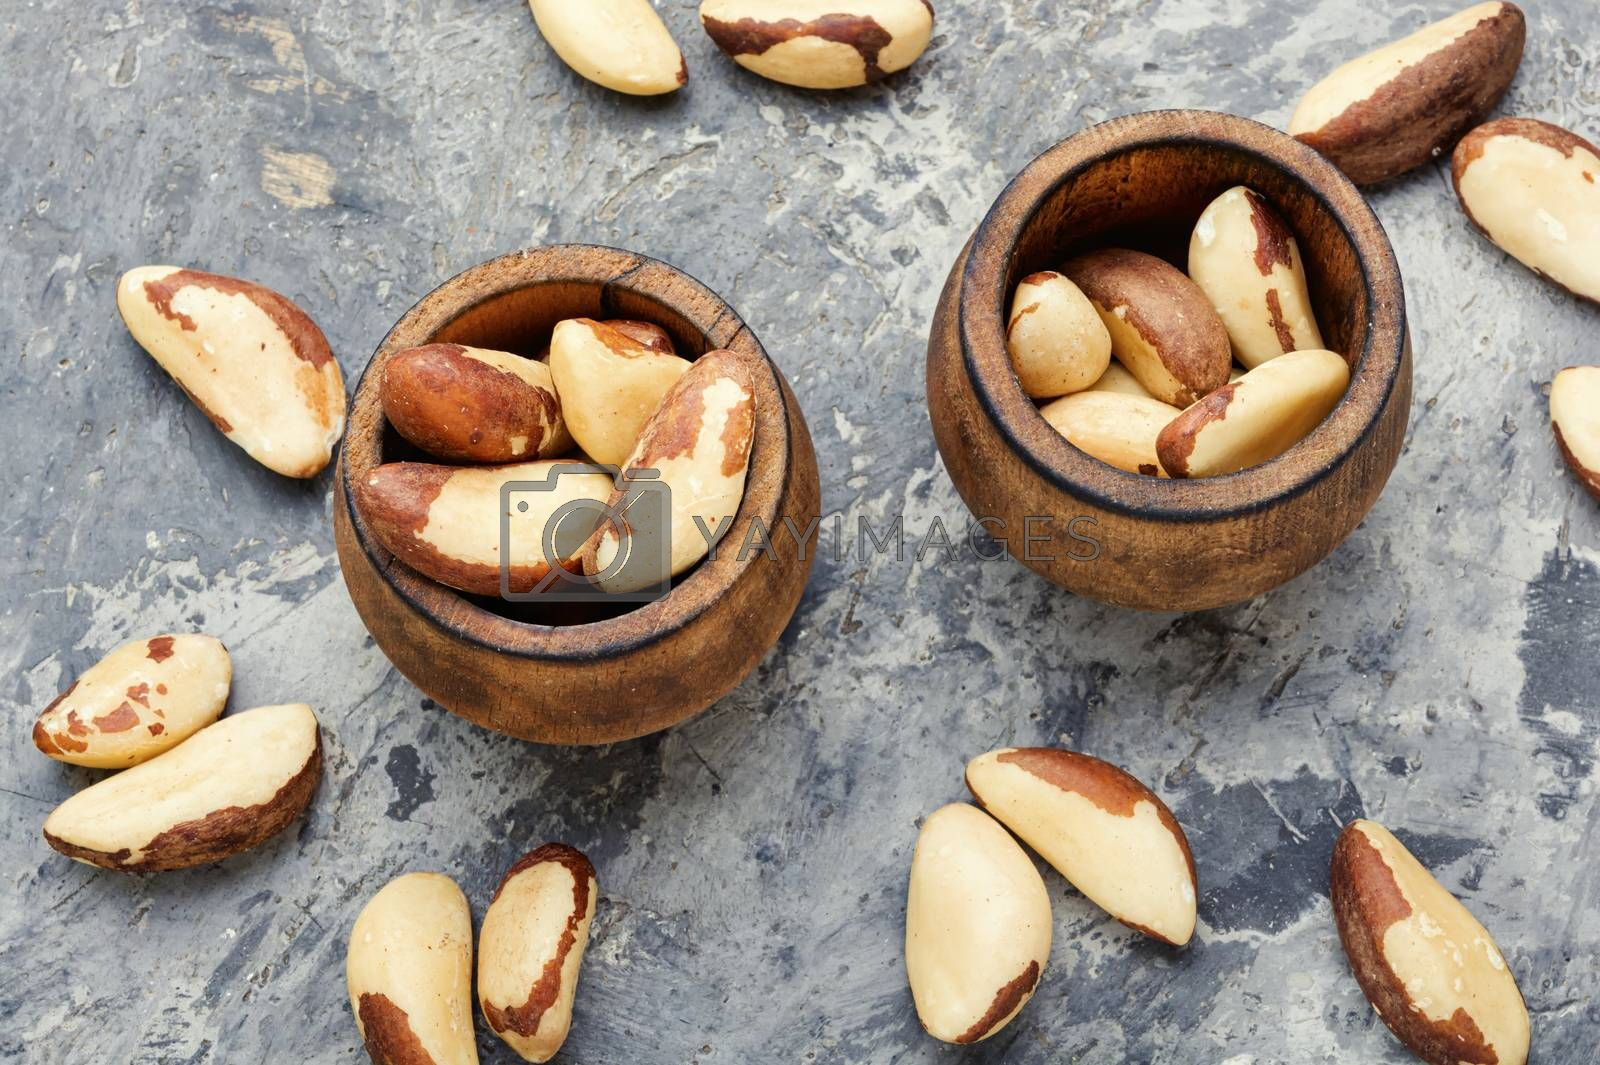 Wooden retro mortar filled with Brazil nut